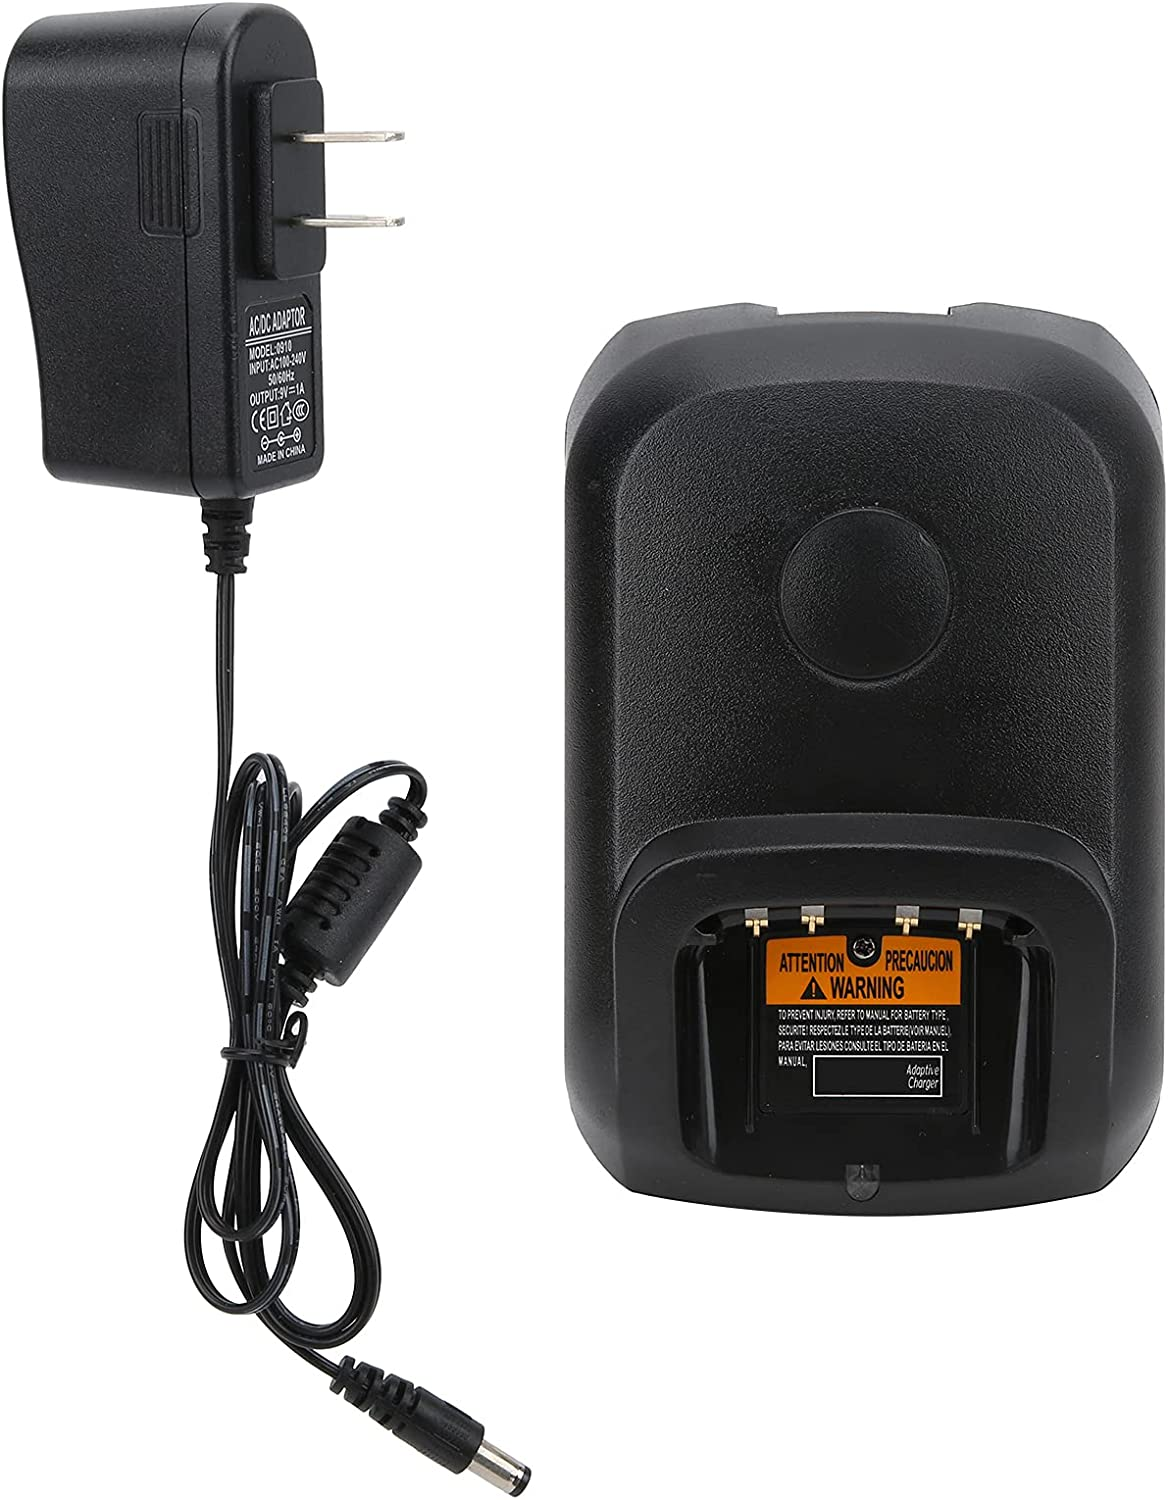 VGEBY Battery Charging Dock 2 Way Radio Genuine Free Shipping Charger Max 86% OFF Chargin